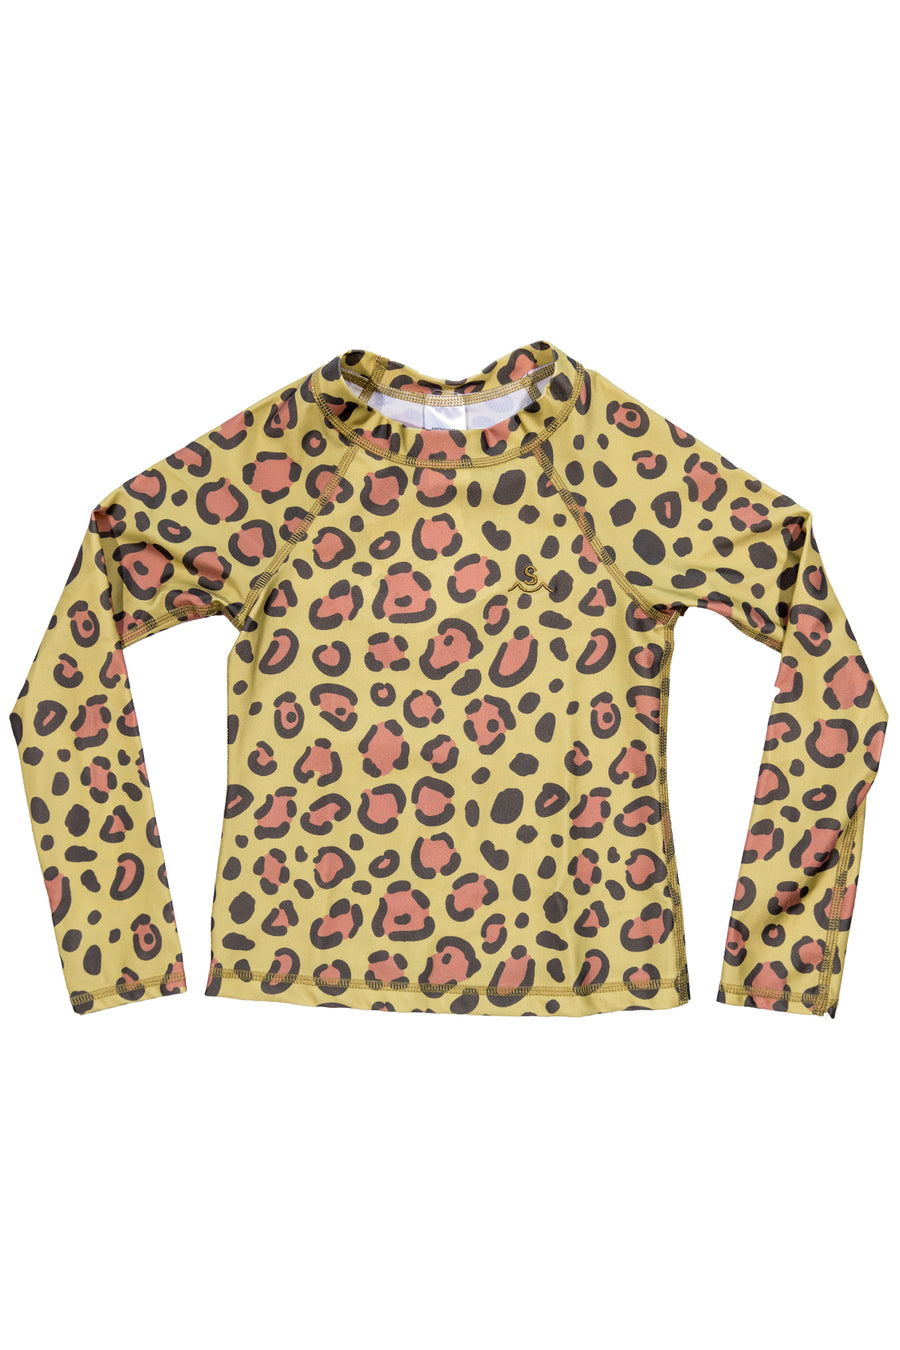 Kids Rashguard / Calico Crab